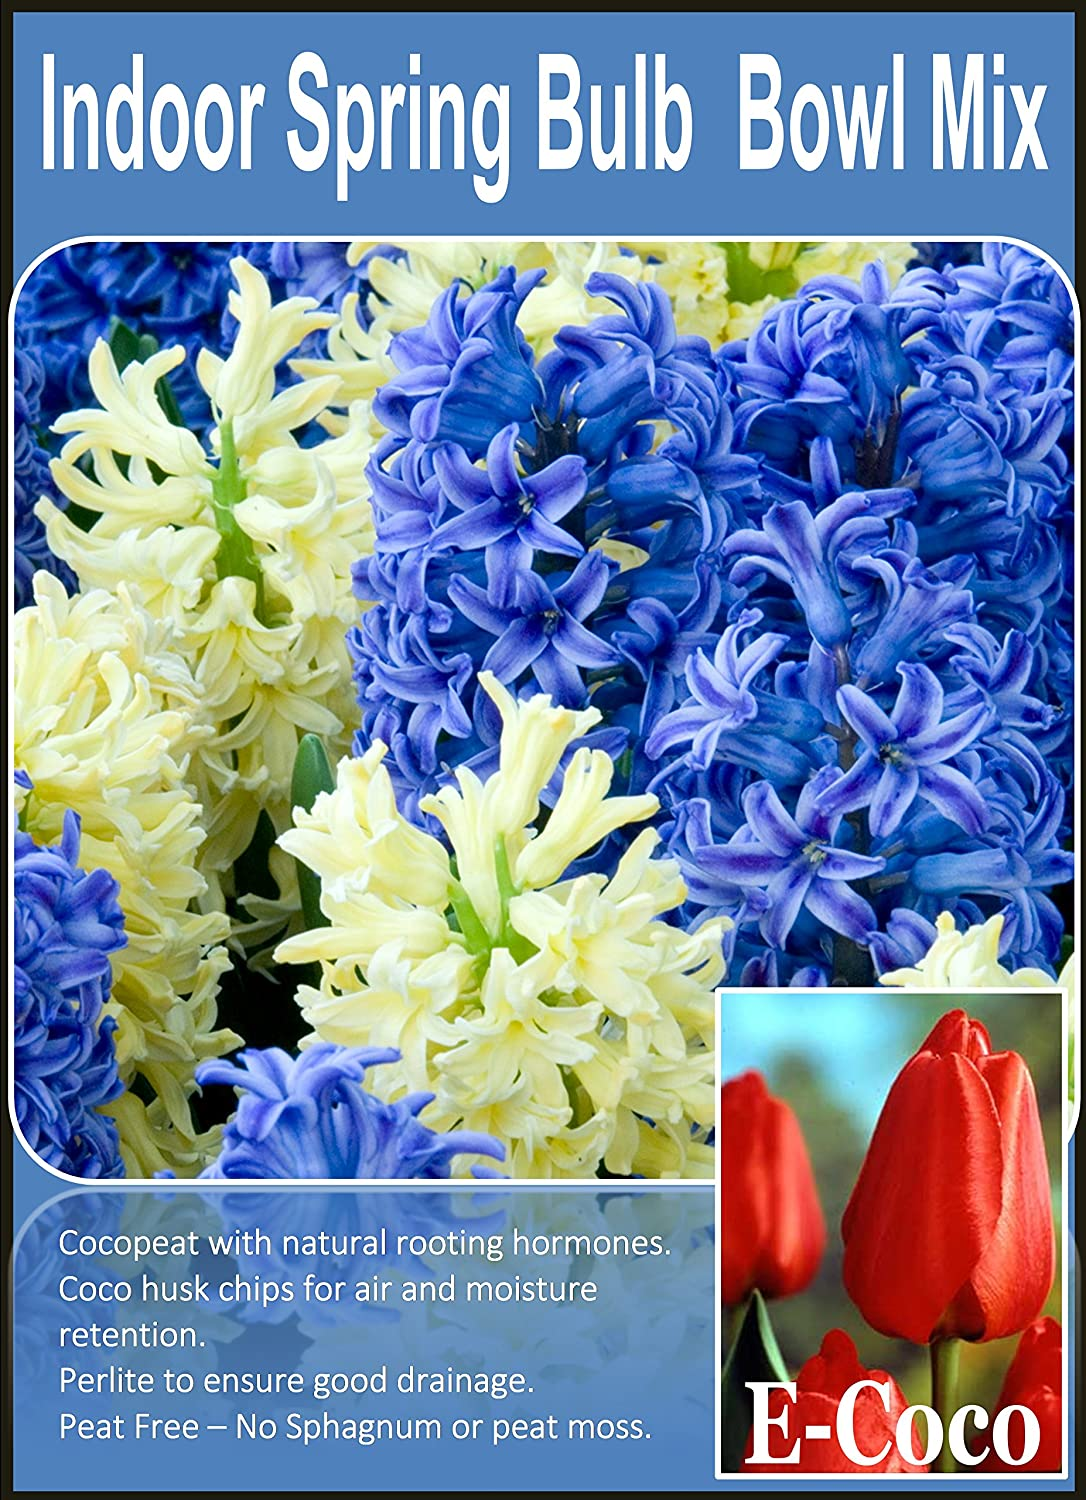 BULB FIBRE for INDOOR SPRING BULB BOWLS - READY TO USE - with PERLITE (1 LITRE) E-COCO PRODUCTS UK